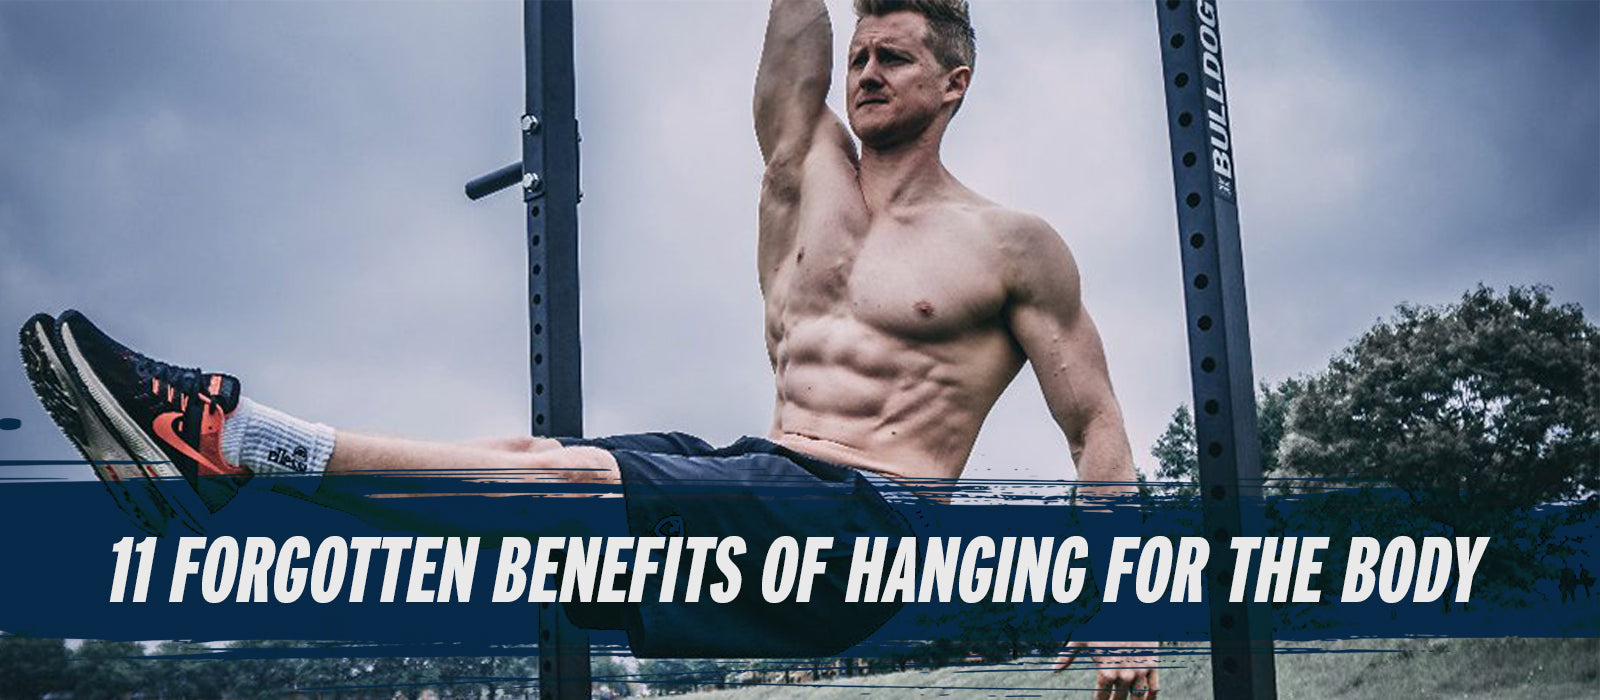 11 Forgotten Benefits Of Hanging For The Body